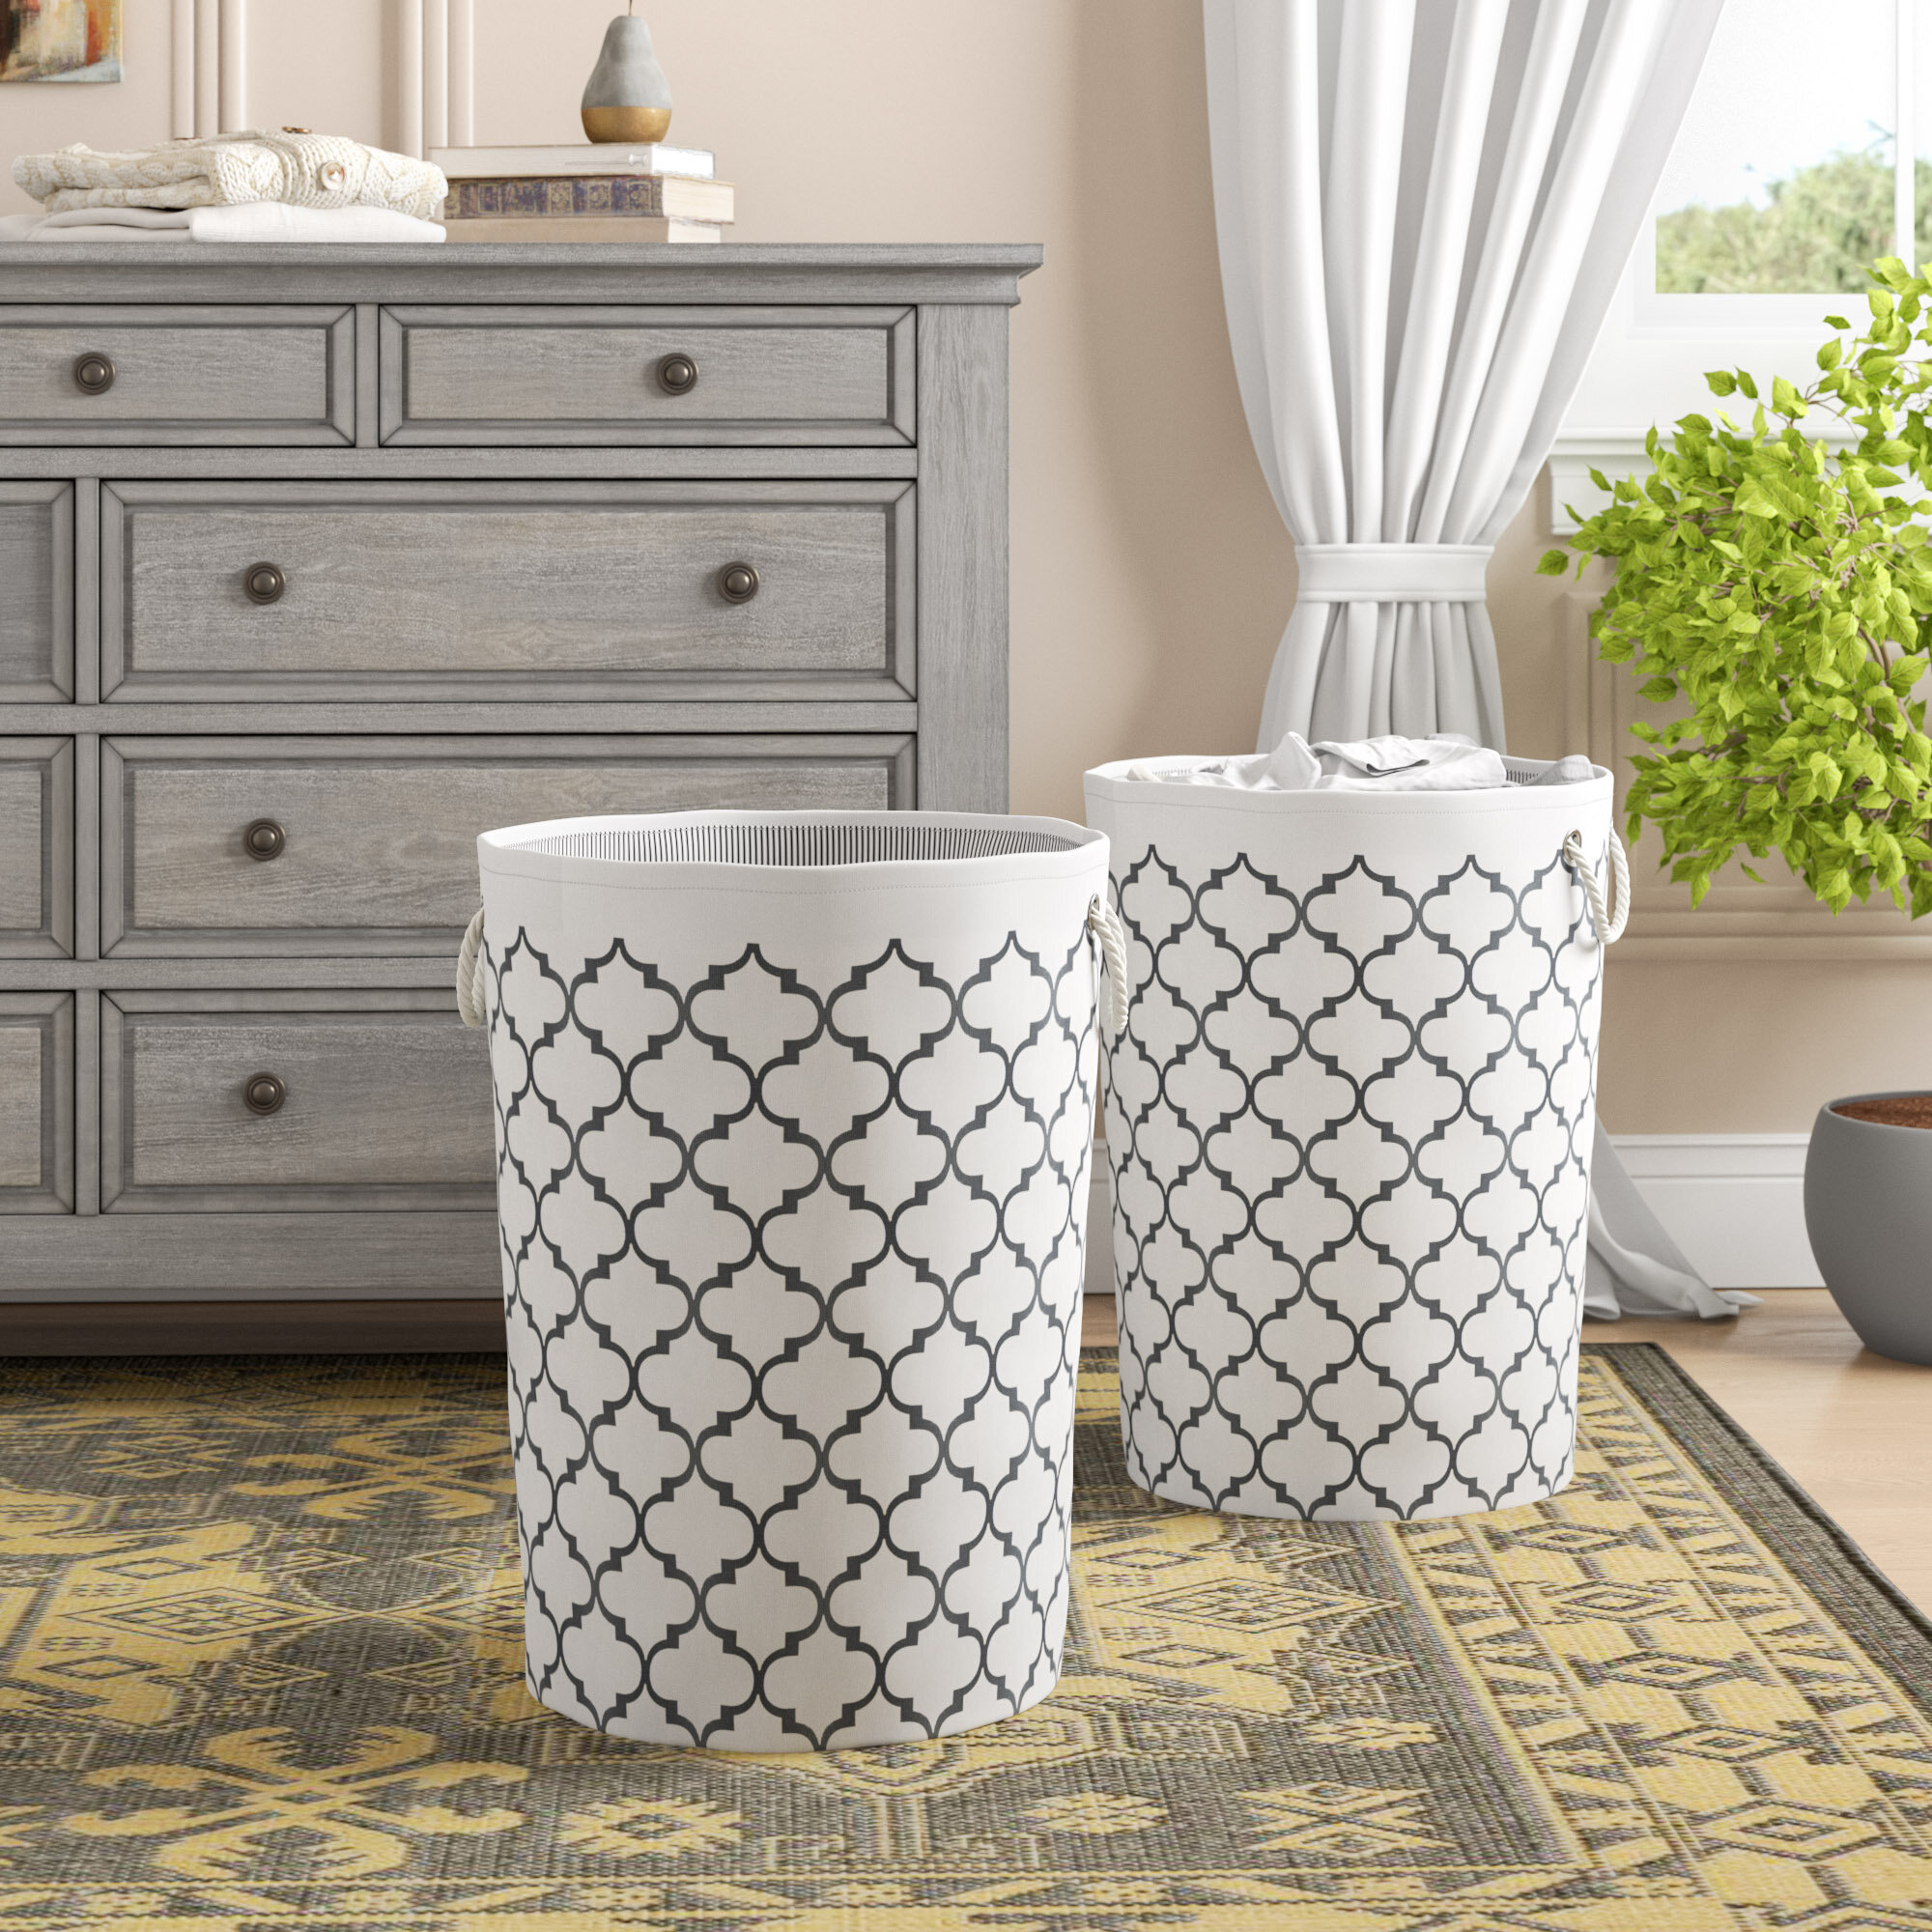 Charlton Home Moroccan Lattice Print Round Collapsible Laundry Hamper &